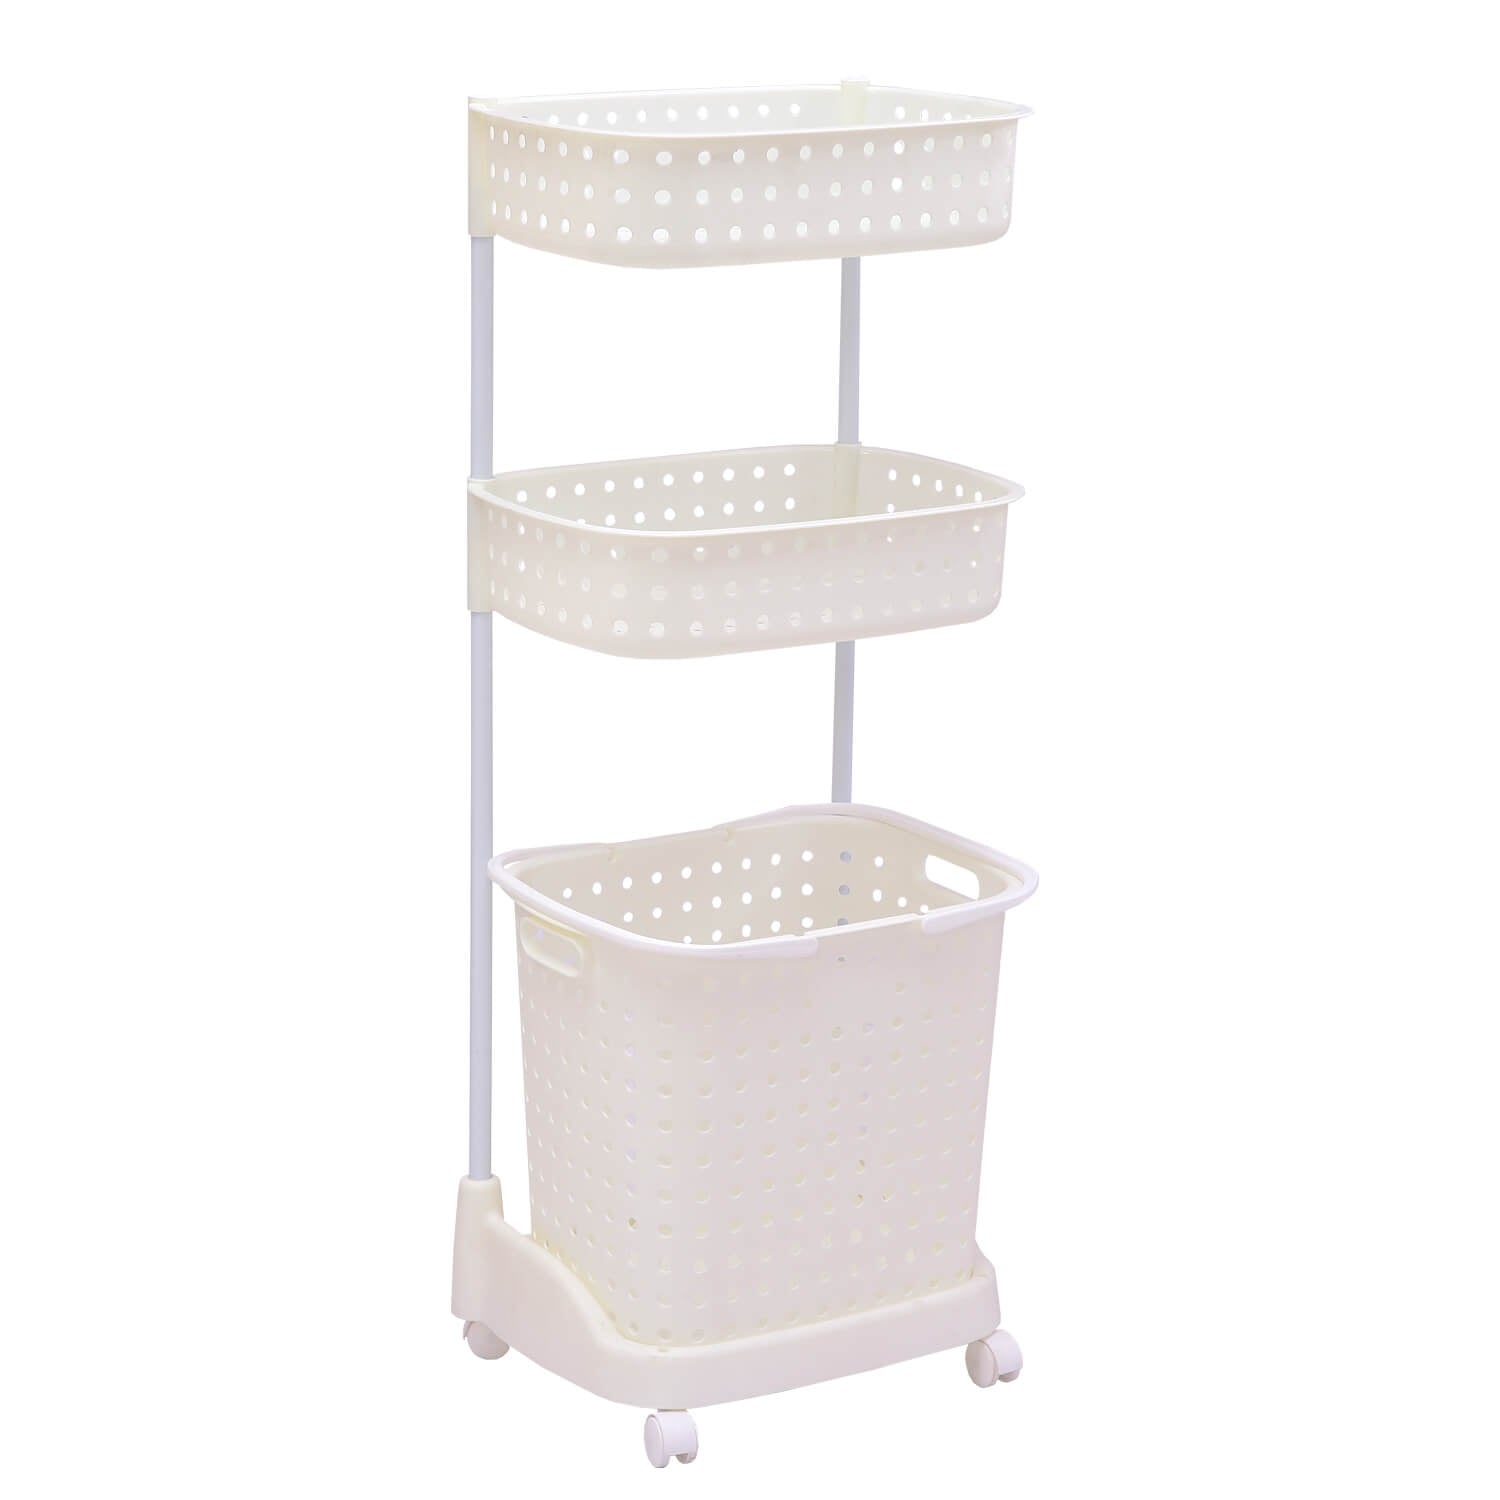 3 Tier Bathroom Laundry Clothes Baskets Bin Hamper Mobile Rack Removable Shelf